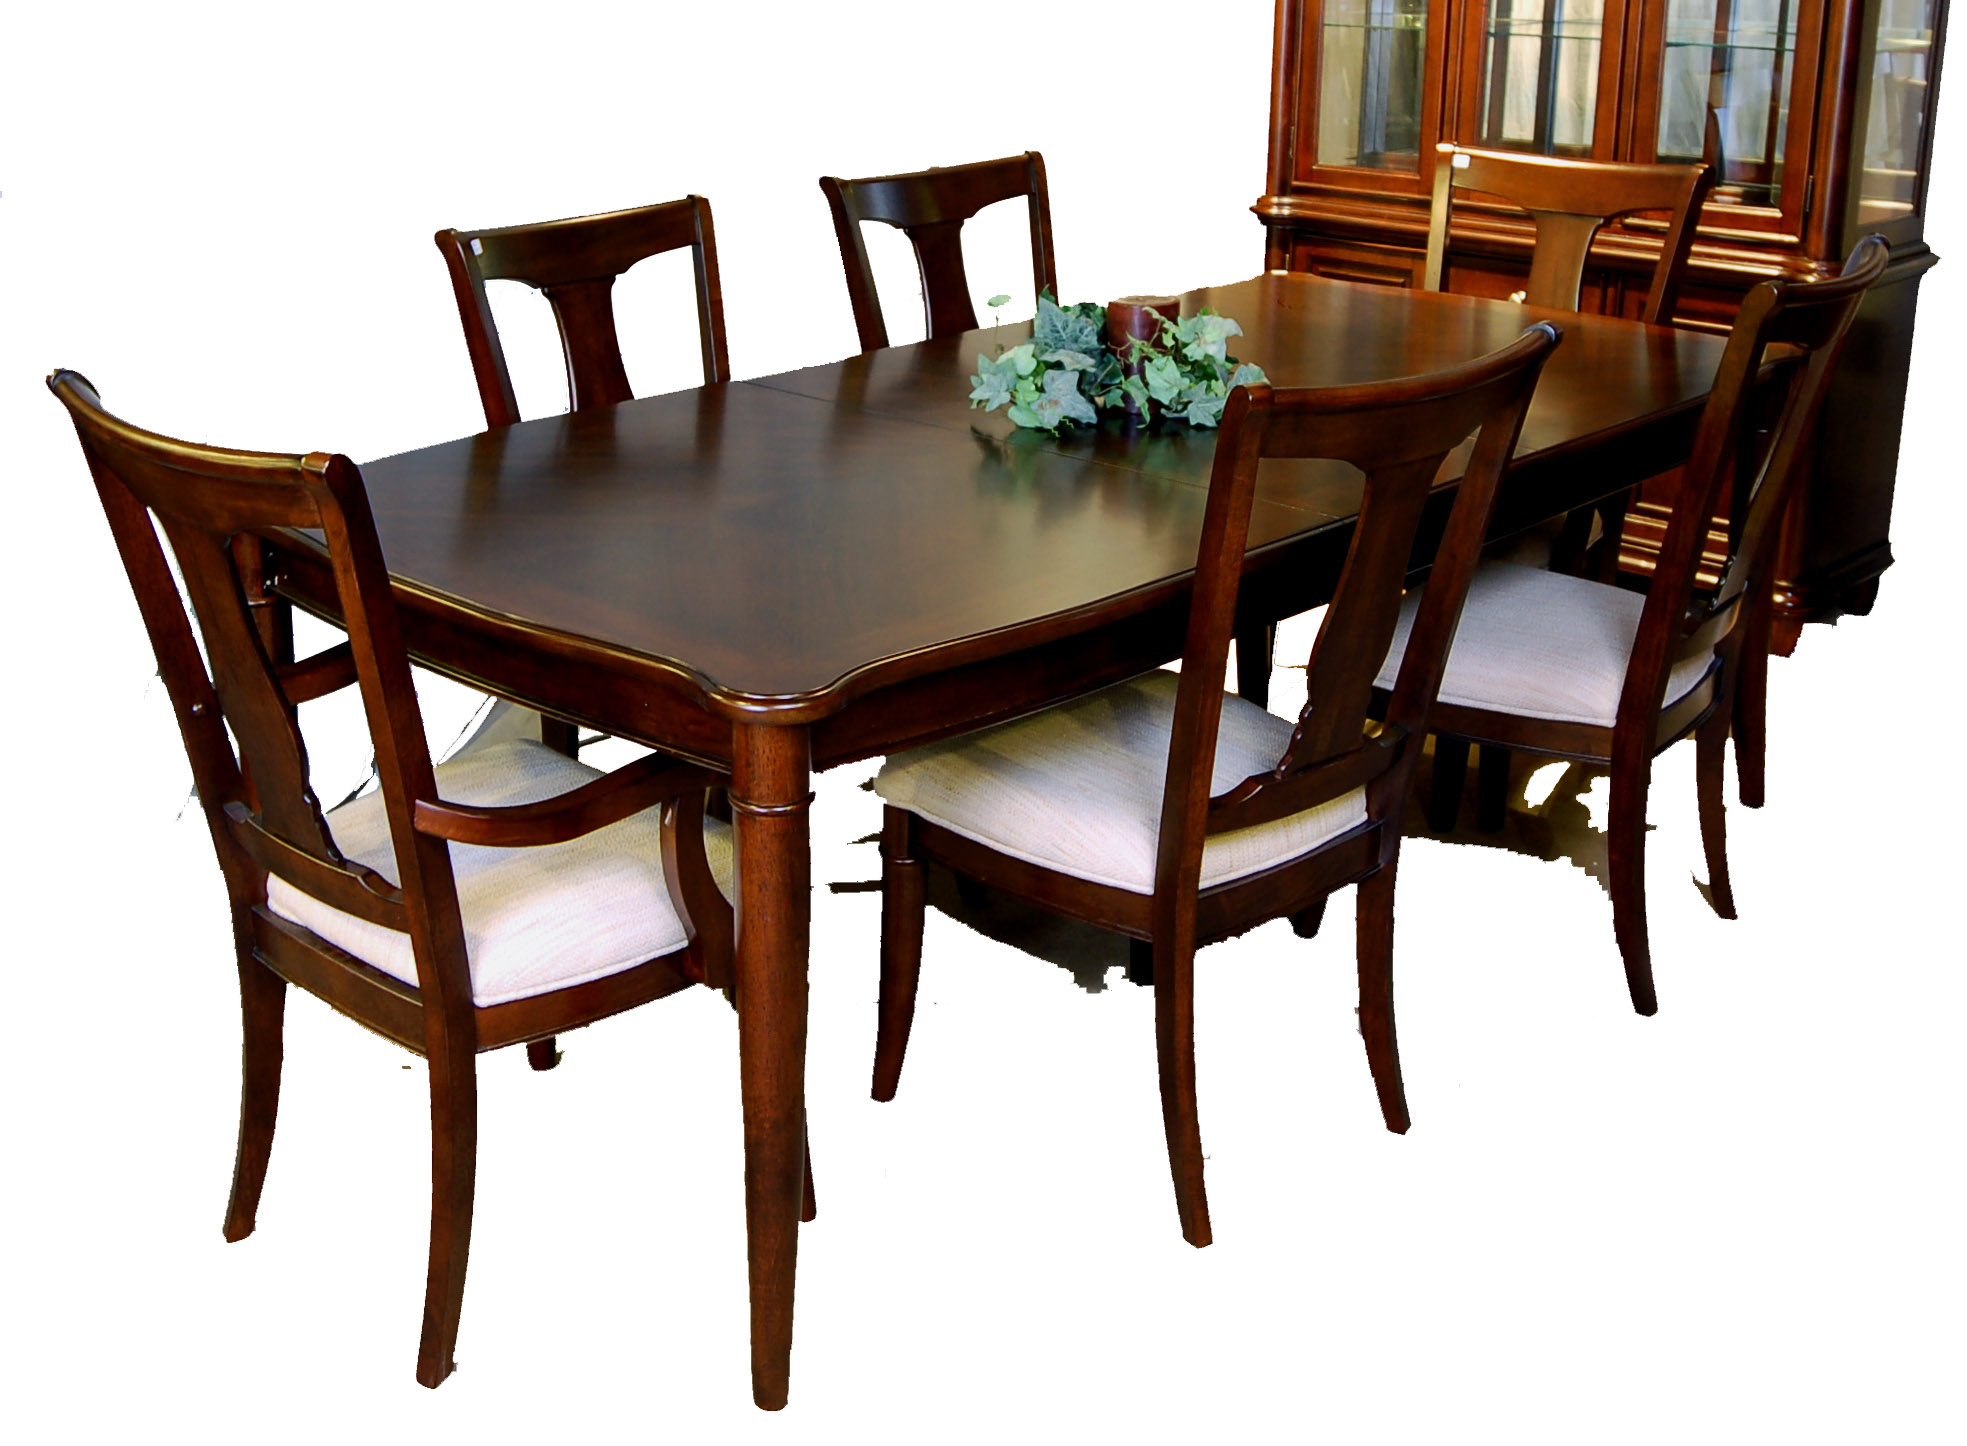 7 piece dining room table and chair set ebay Dining room table and chairs